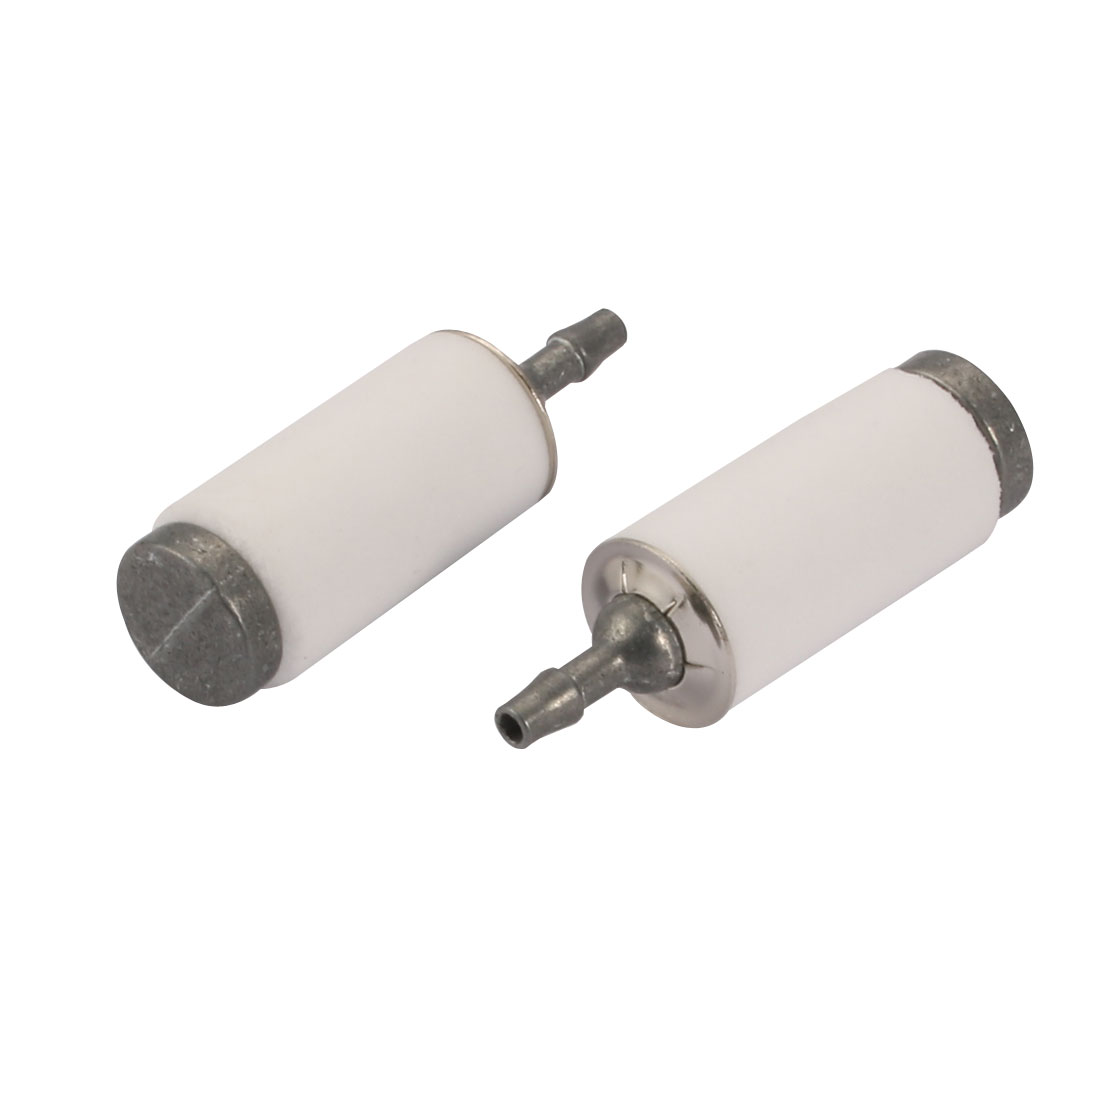 2Pcs Fuel Filter Fit For 2024B Weedeater Trimmer Edger Chainsaw Blower